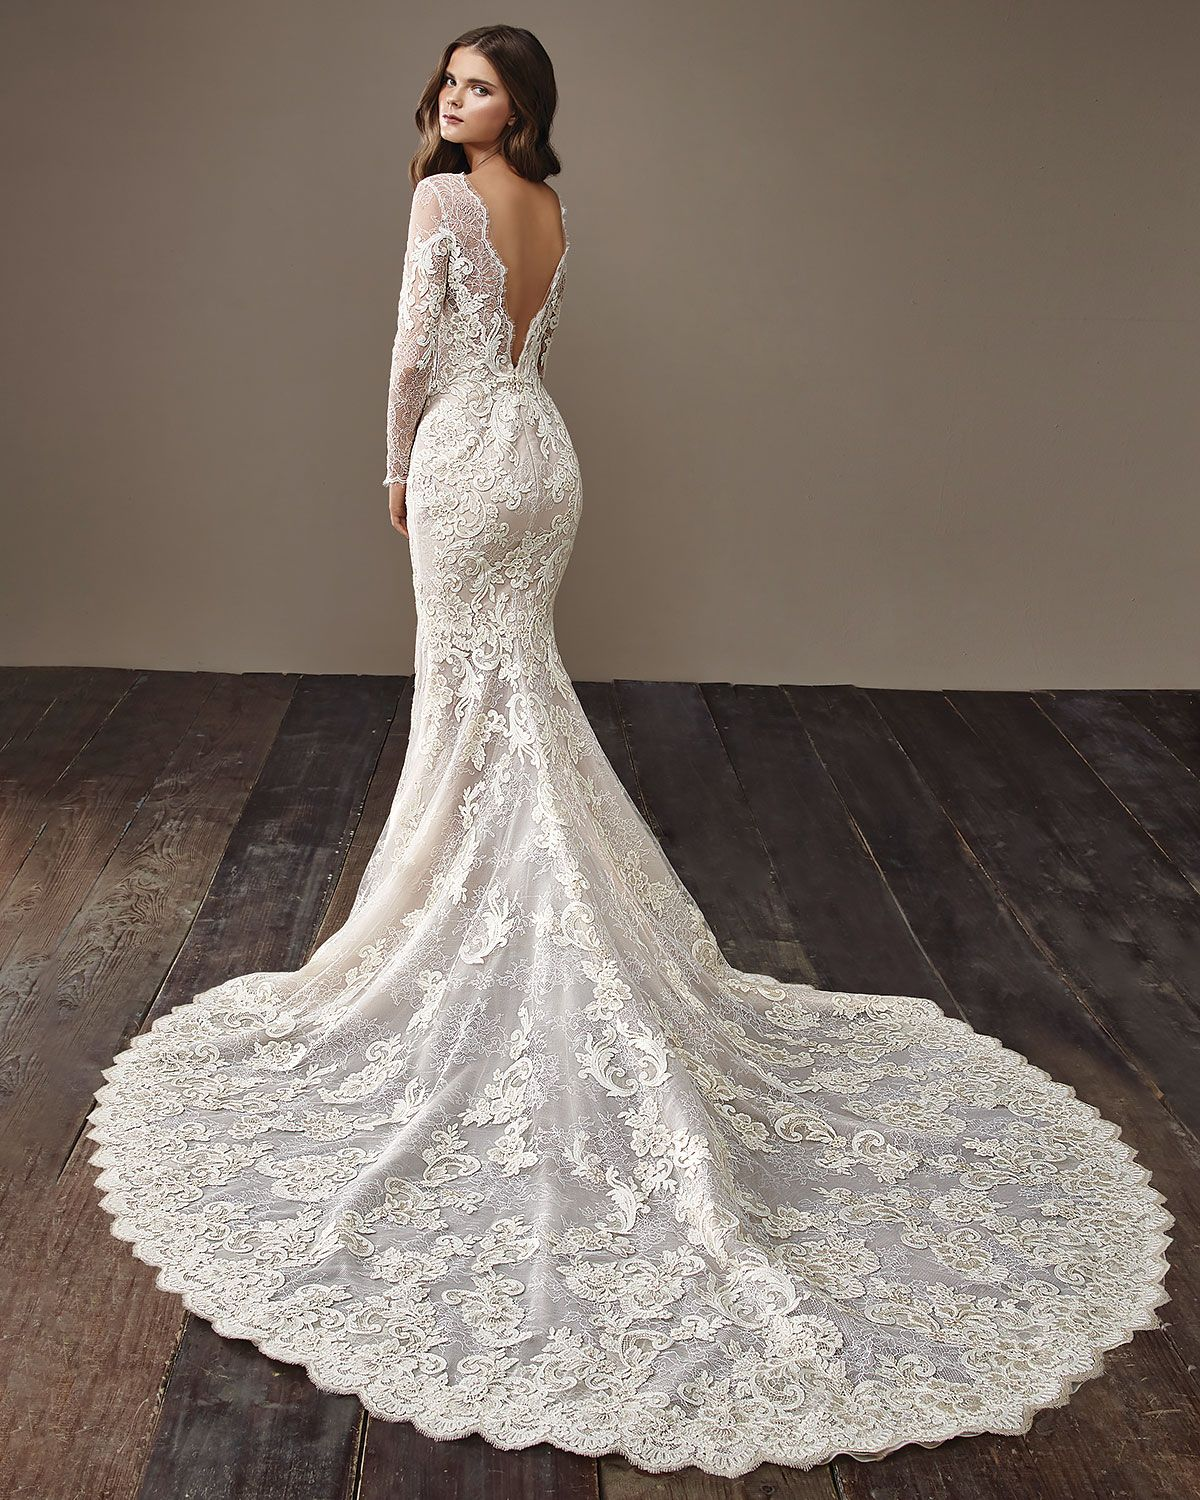 Fitted Lace Long Sleeve Wedding Dress With A Long Train And Low